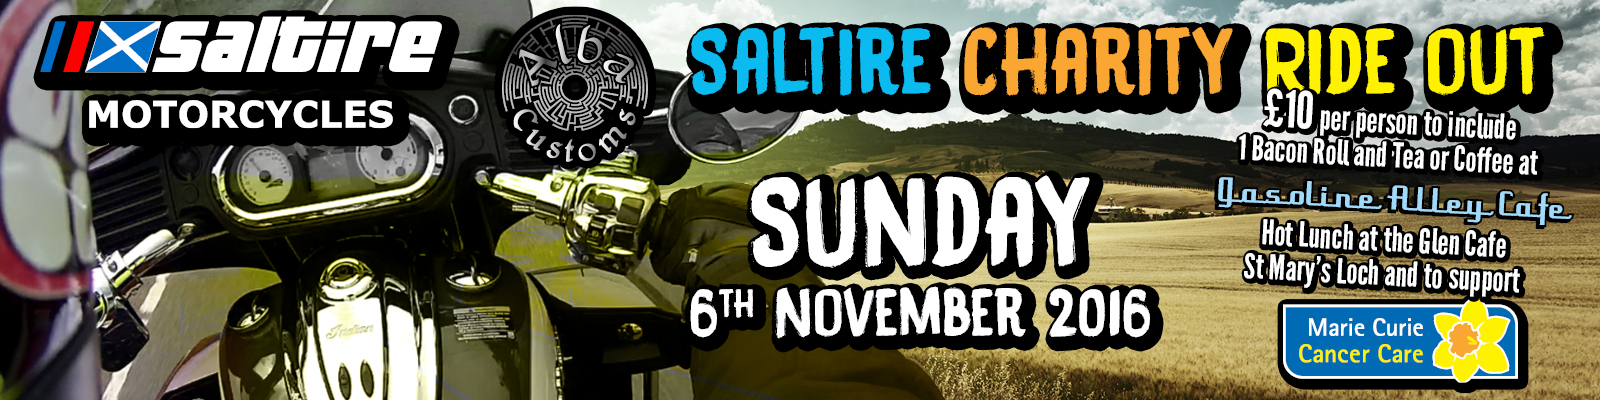 Saltire Motorcycles charity ride out 6th November 2016